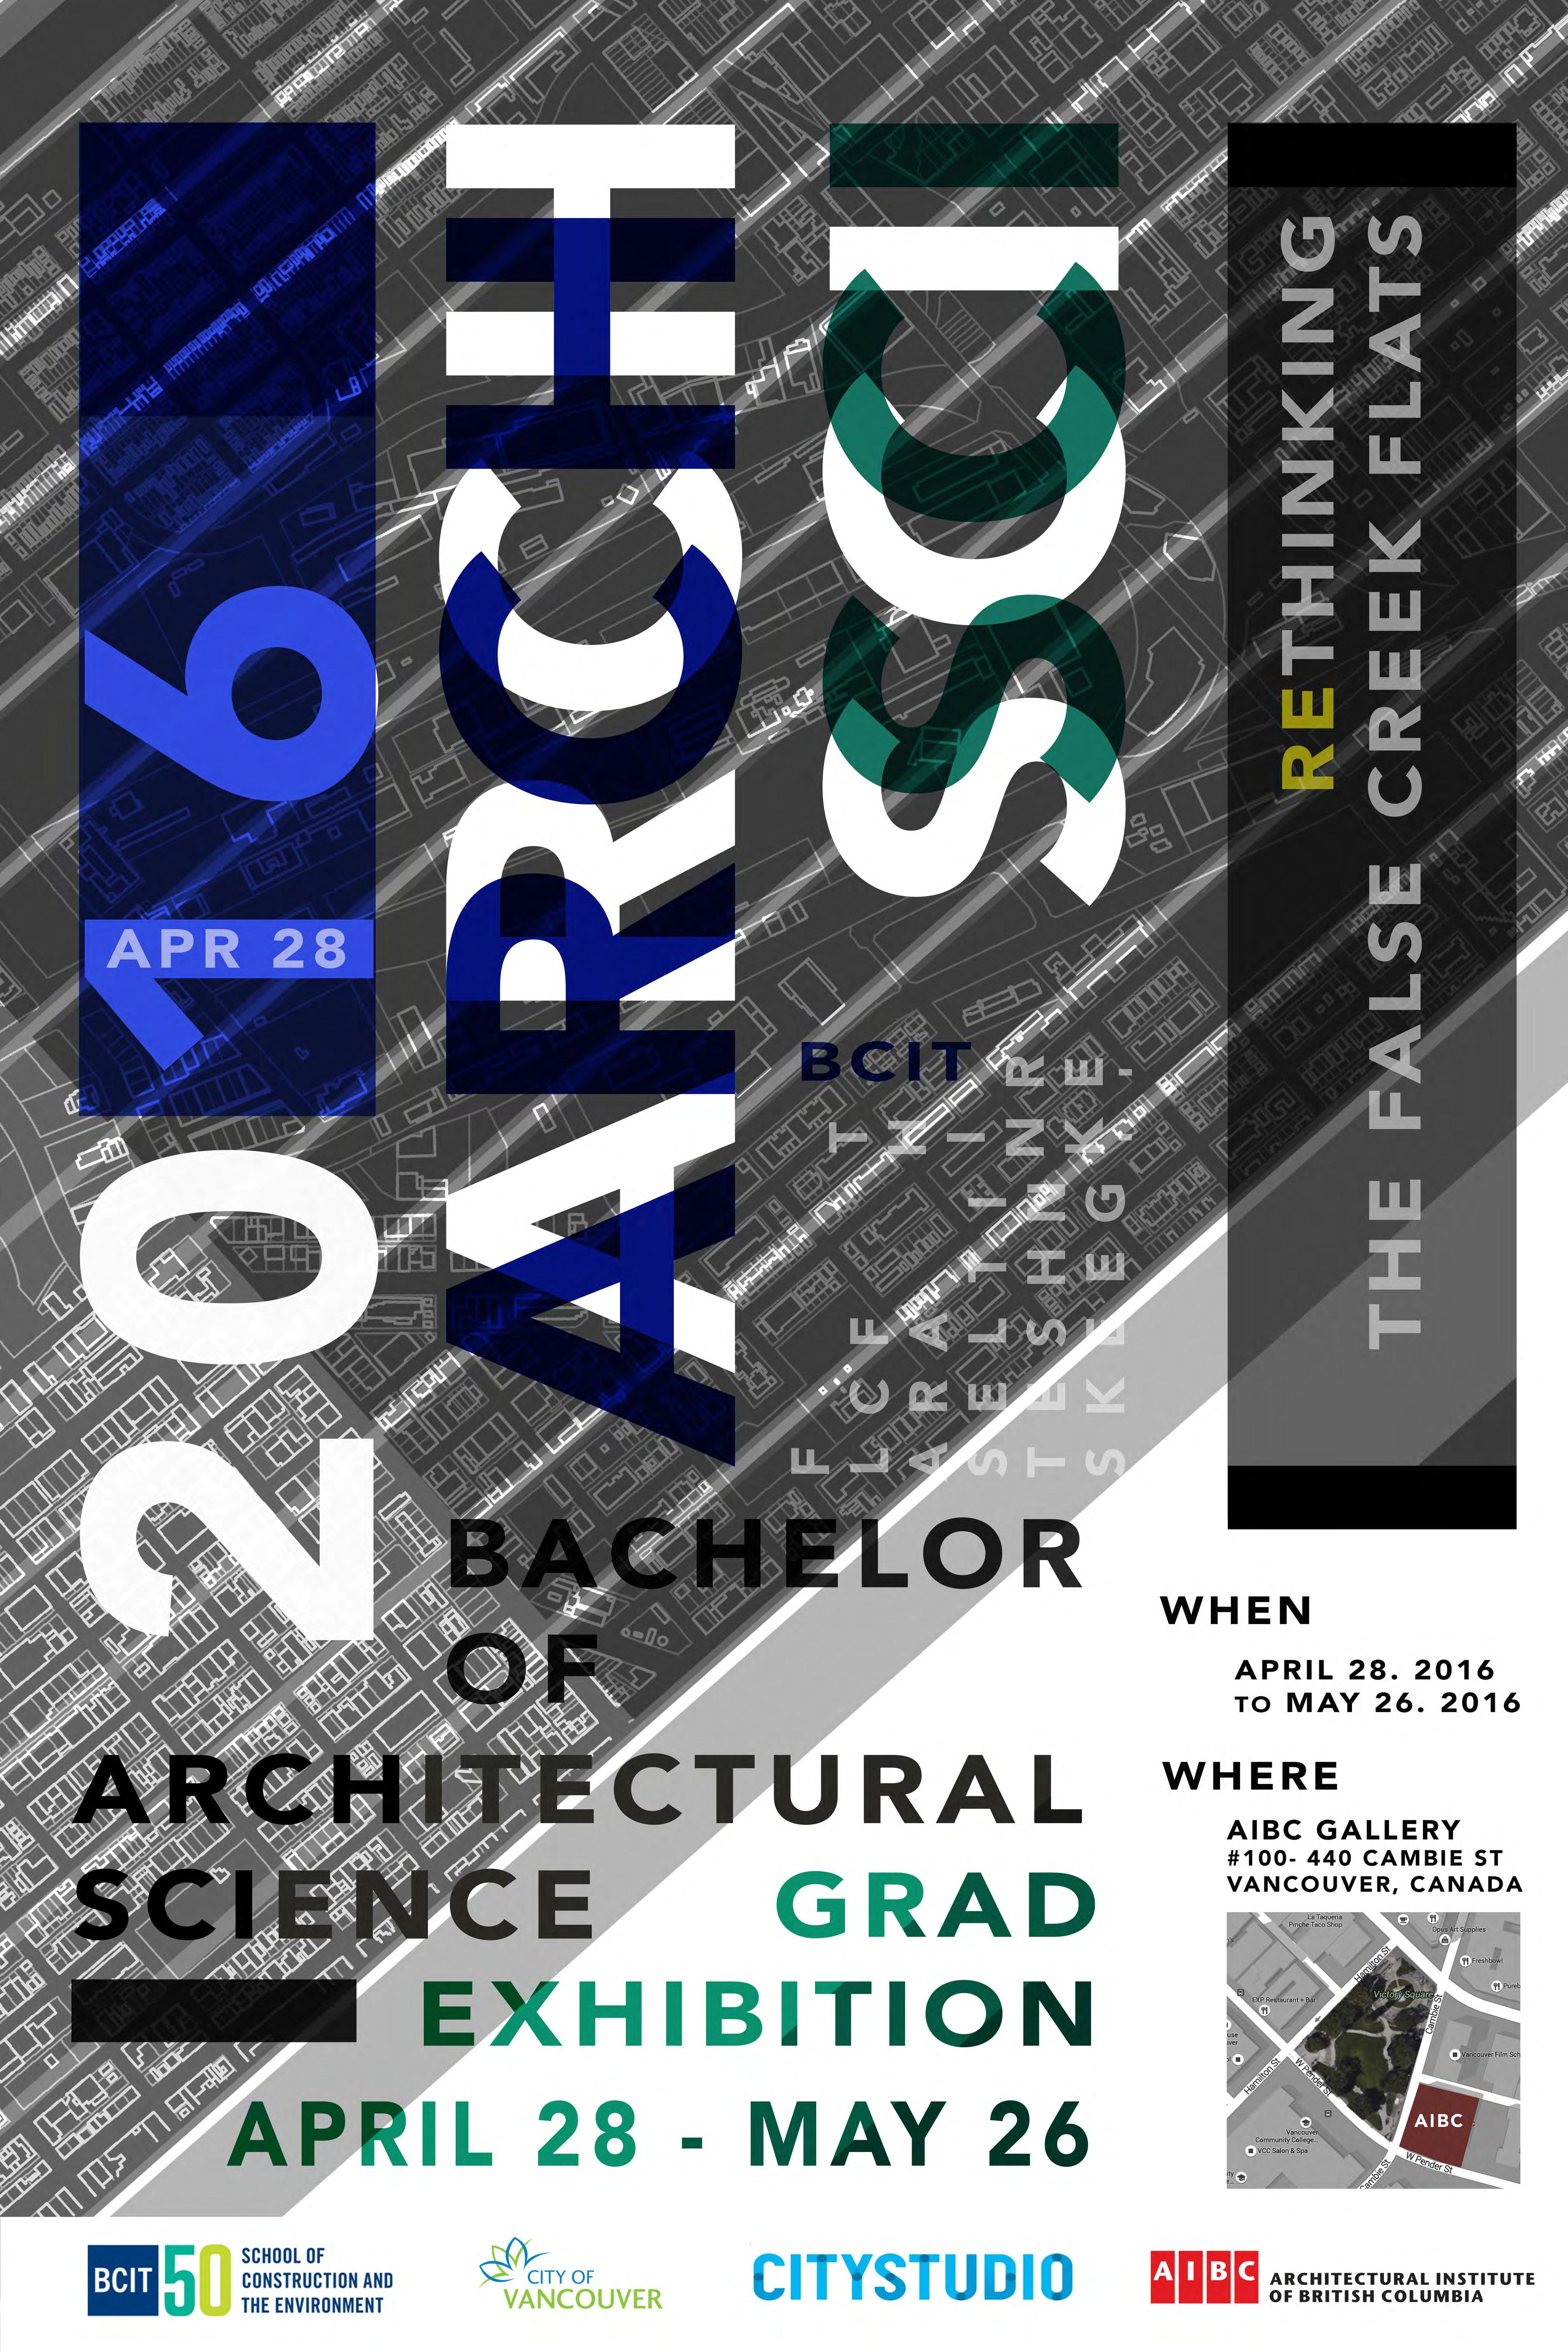 BCIT Bachelor Of Architectural Science Grad Exhibition April 28 May 26 2016